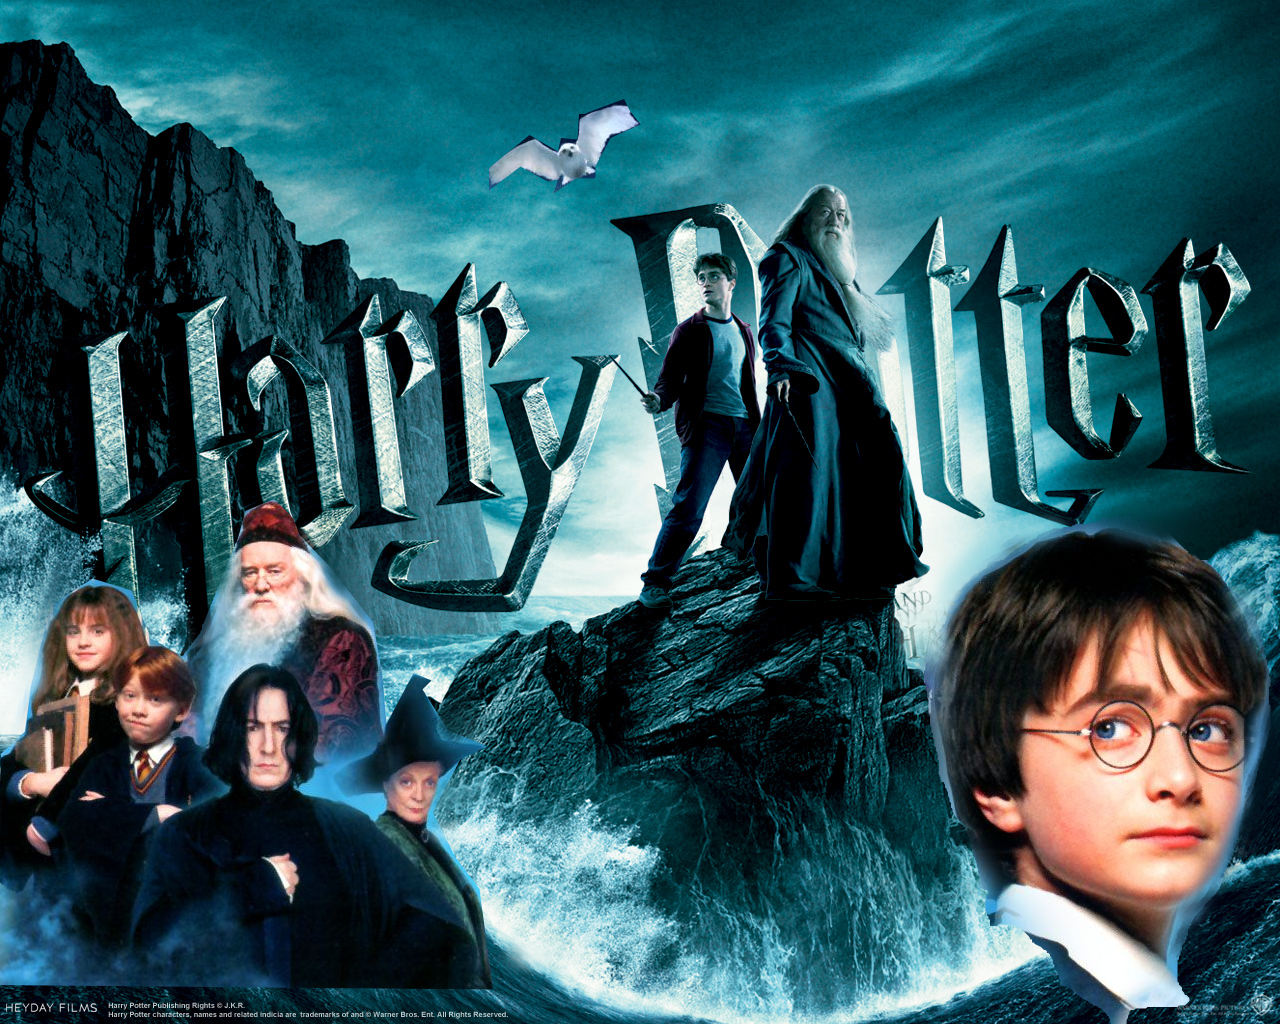 Torna Harry Potter: arriva lo spin-off!